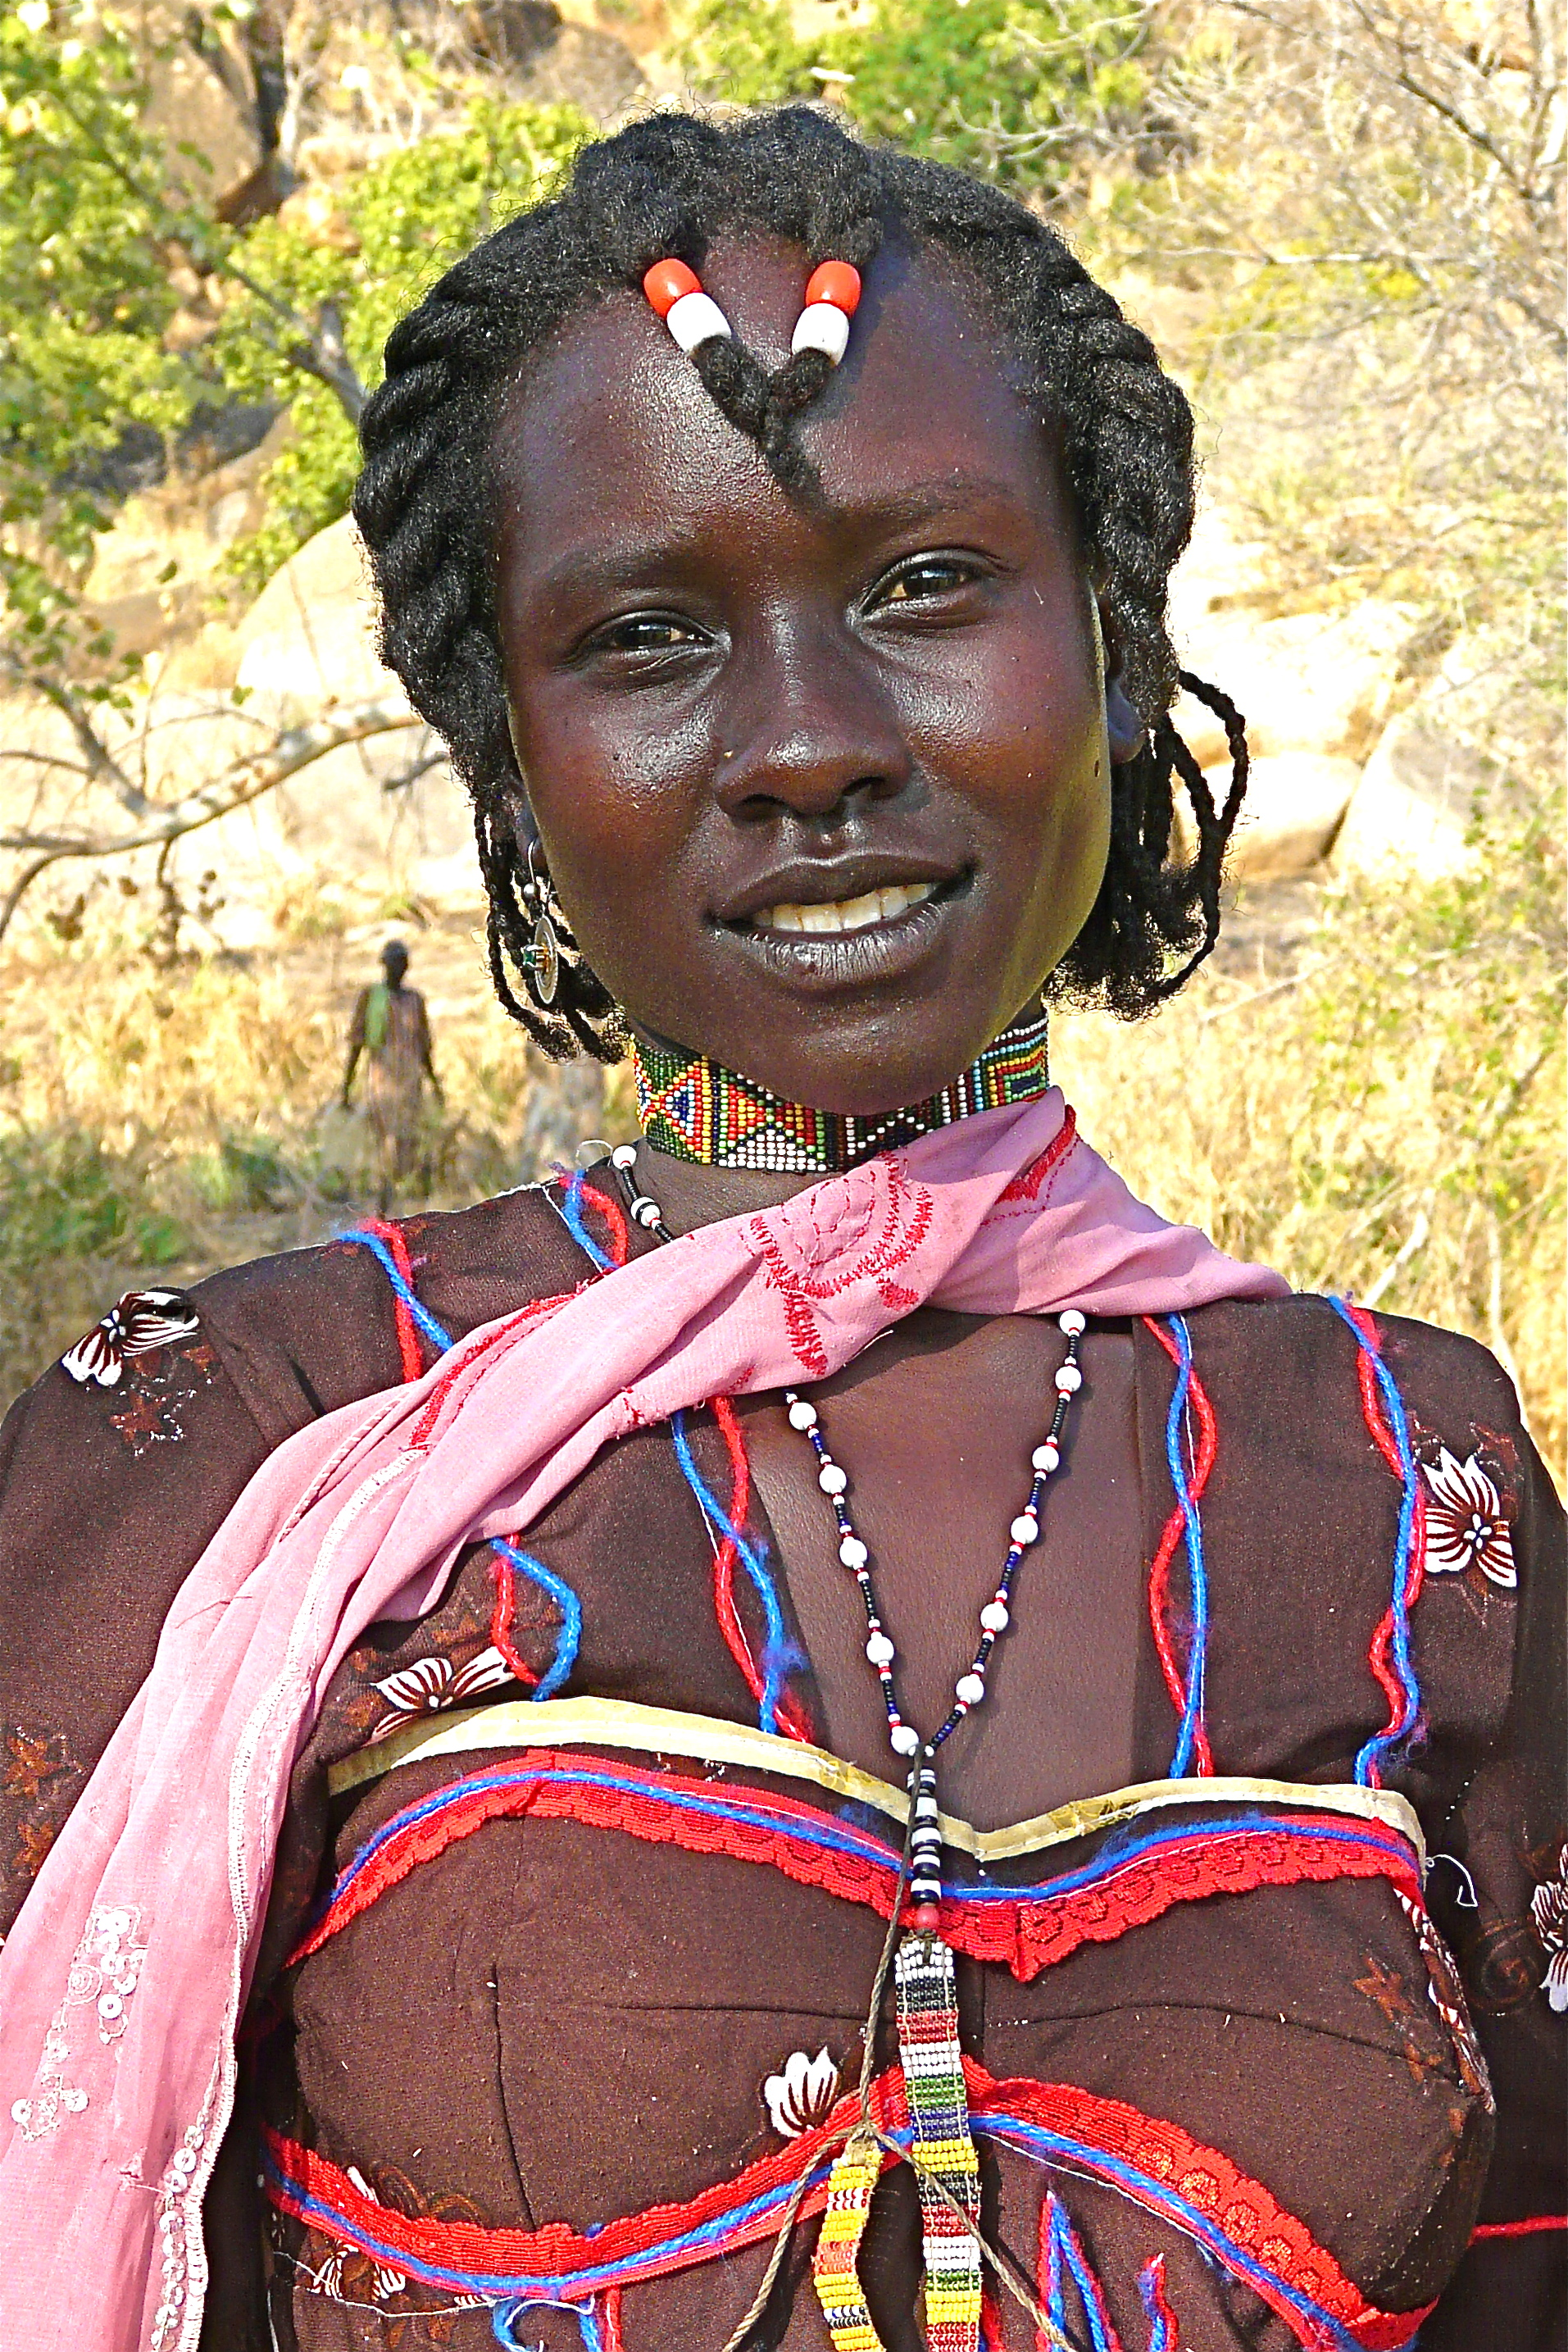 Nuba Tribe http://www.photoree.com/photos/permalink/11871113-14417999@N00